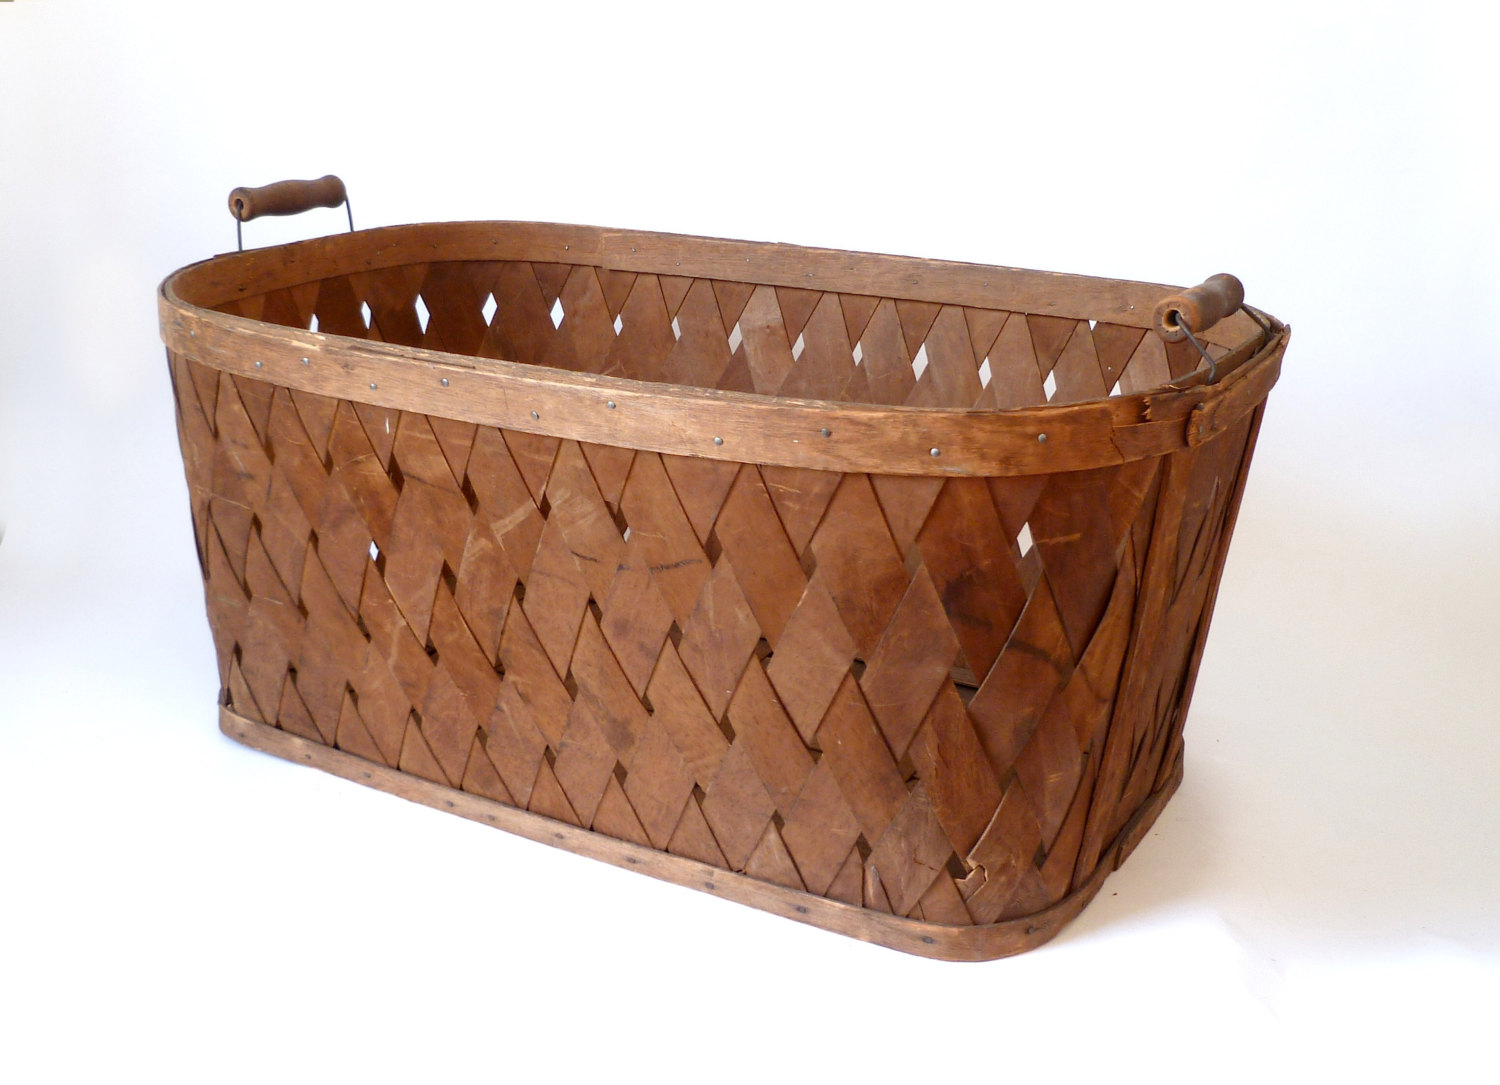 Closed Laundry Basket Large Vintage Split Wood Handled Laundry Basket